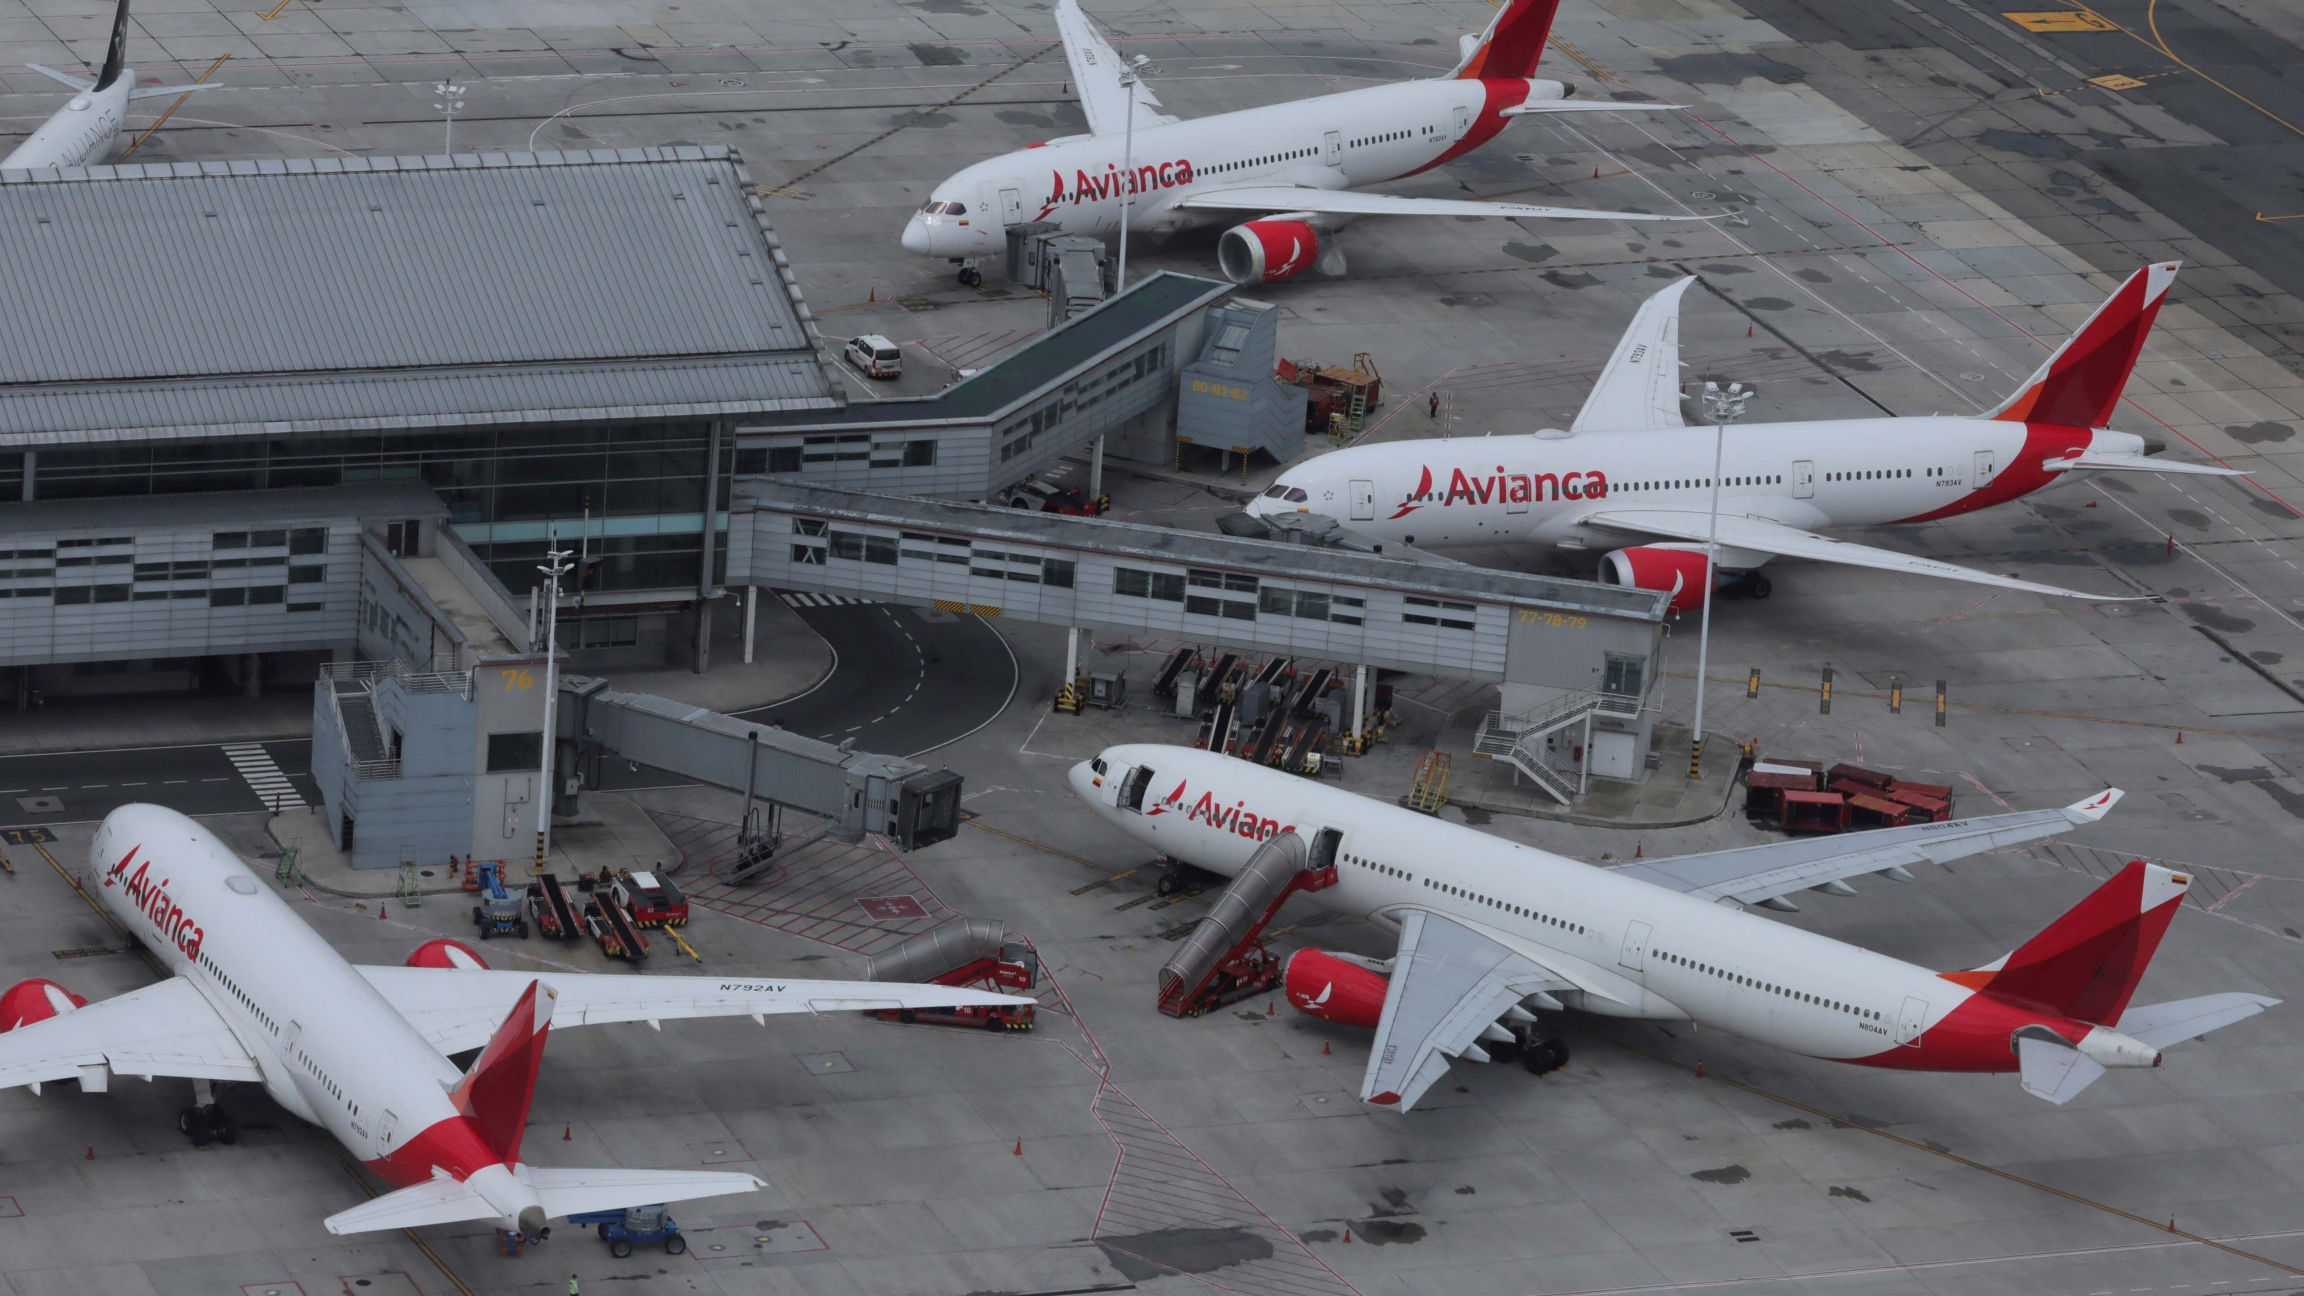 An aerial view shows Colombian airline Avianca's planes parked at El Dorado International Airport amid the coronavirus disease (COVID-19) outbreak in Bogota, Colombia, April 7, 2020.